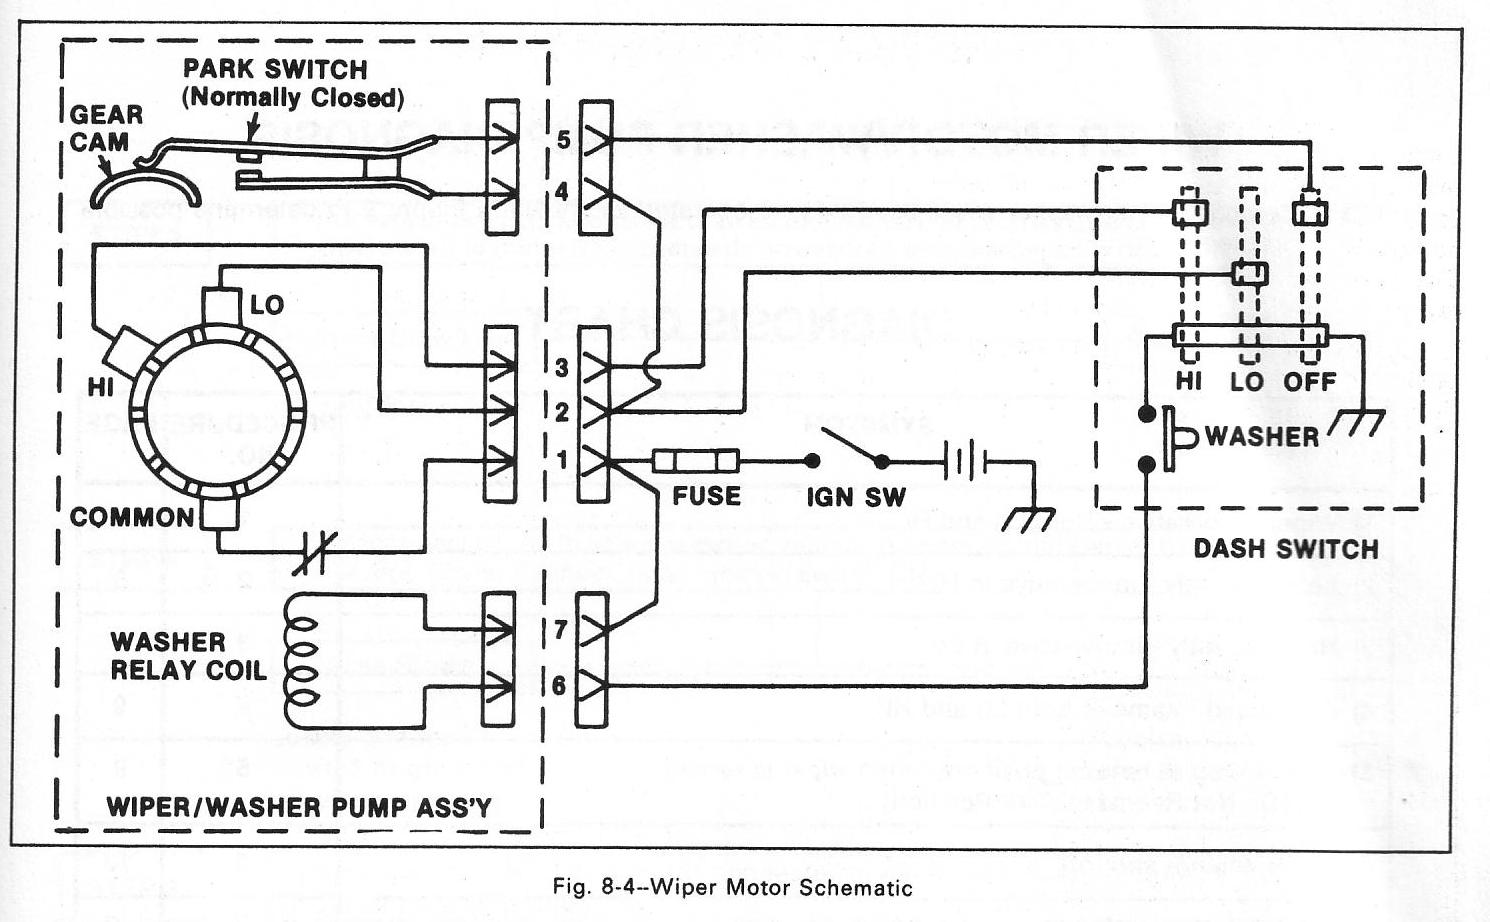 Brilliant 1973 Ford Capri Wiring Diagram Get Free Image About Wiring Diagram Wiring Cloud Waroletkolfr09Org